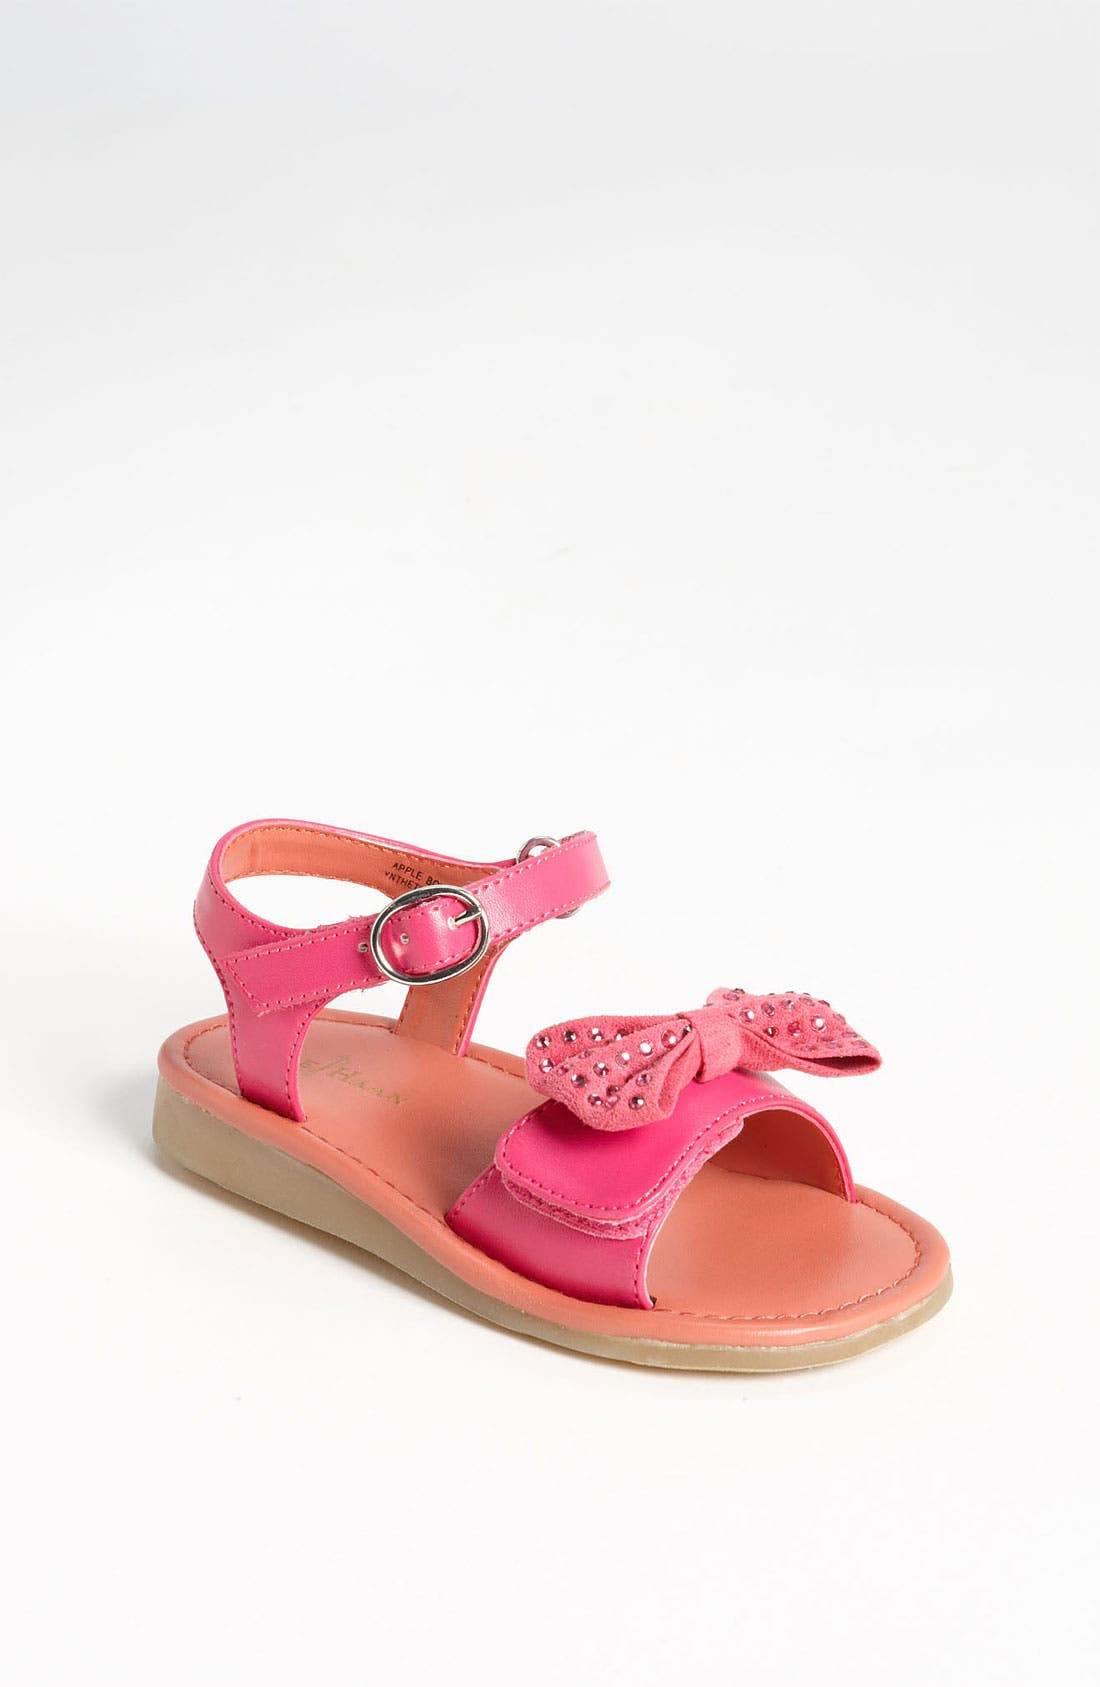 Main Image - Cole Haan 'Apple Bow' Sandal (Walker & Toddler)